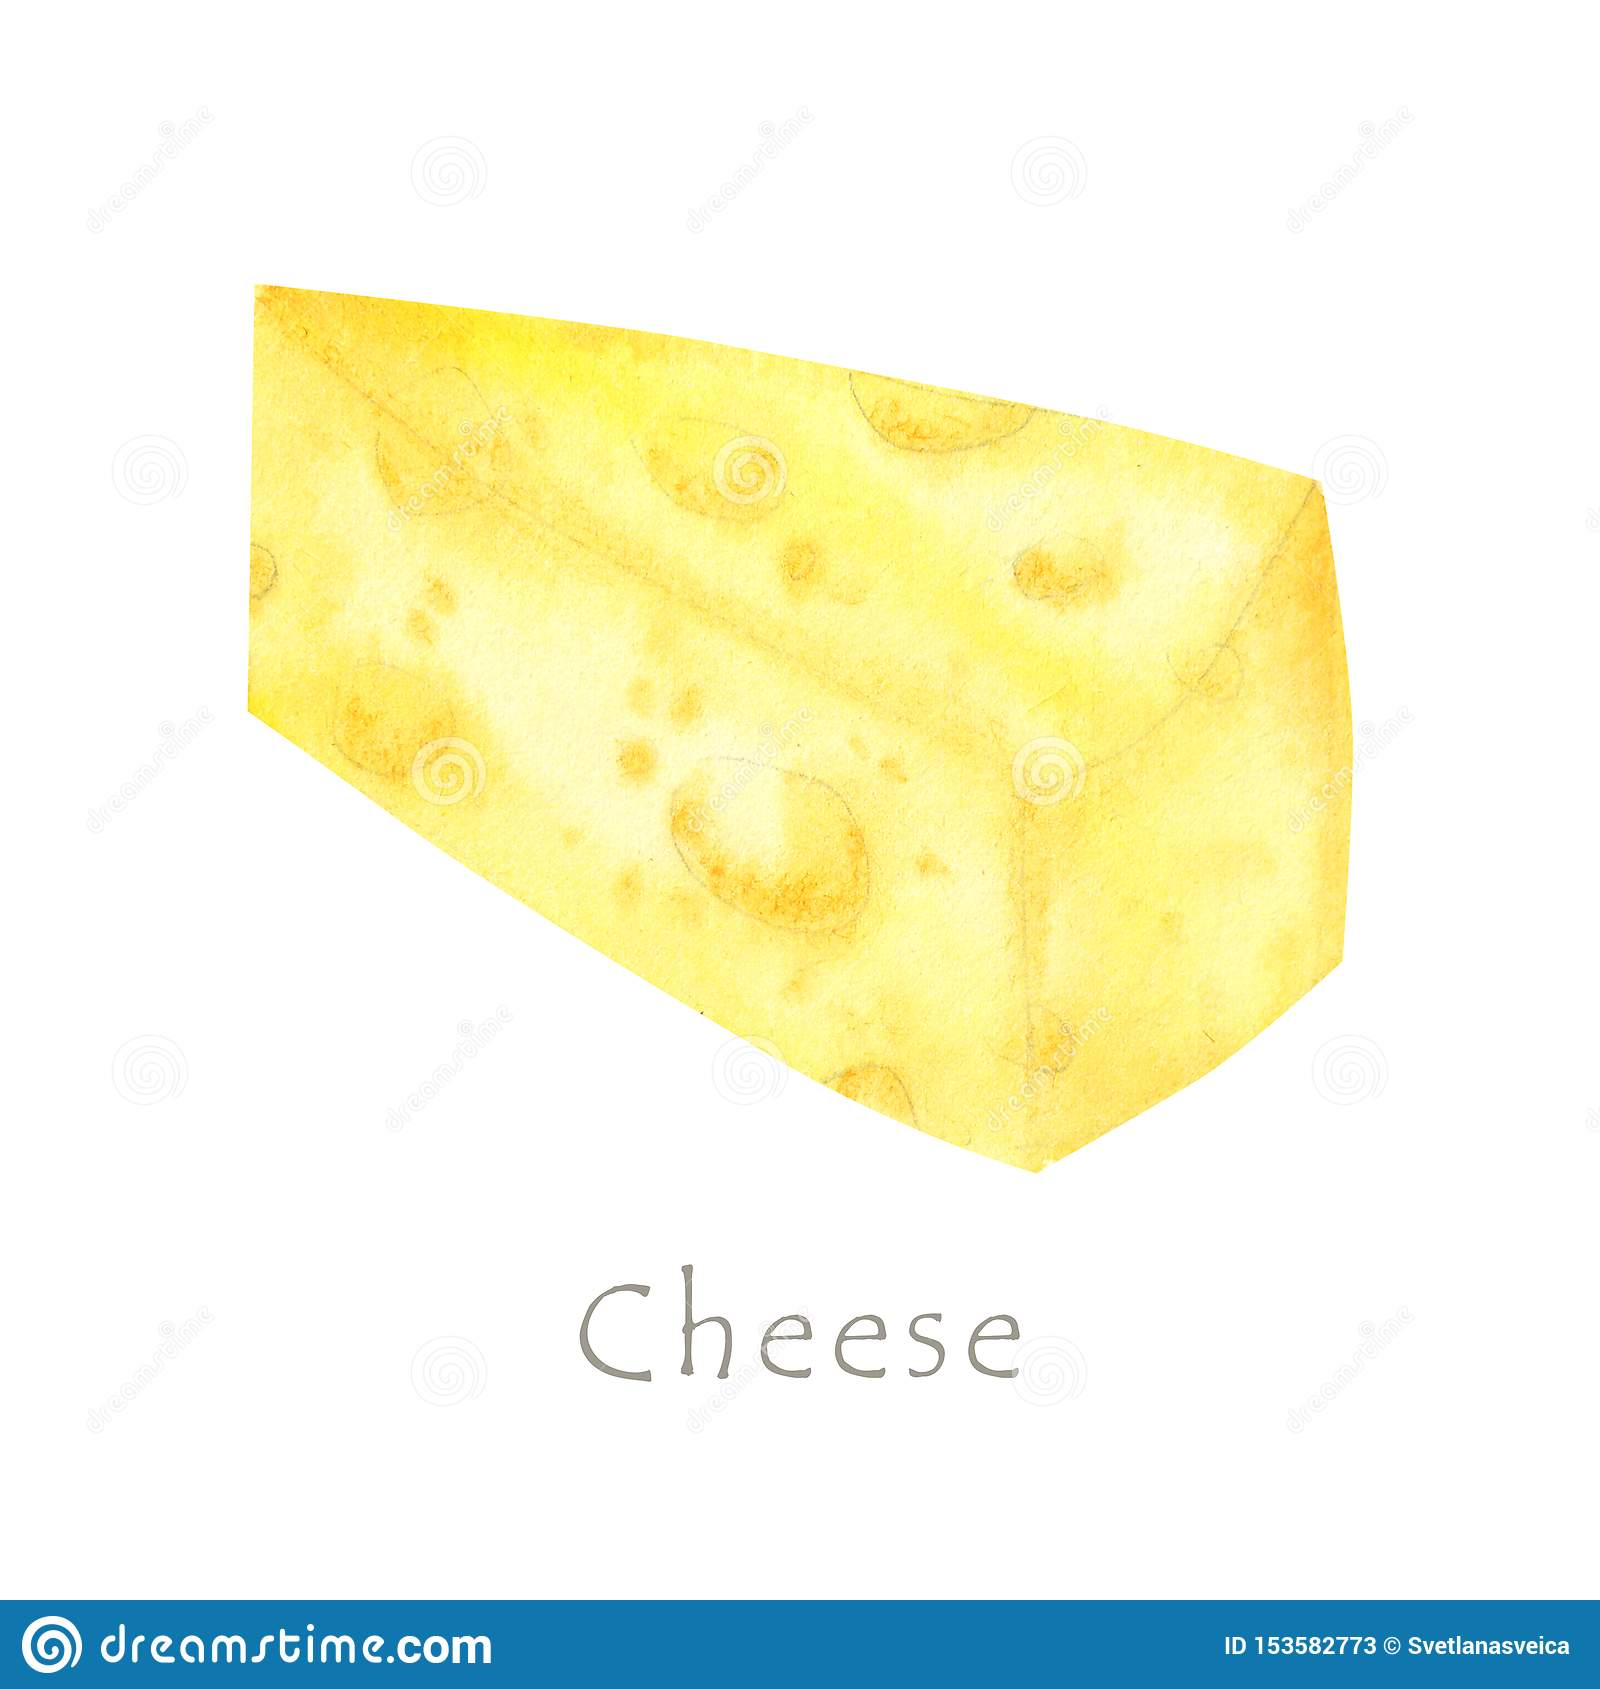 1 559 Drawing Cheese Photos Free Royalty Free Stock Photos From Dreamstime